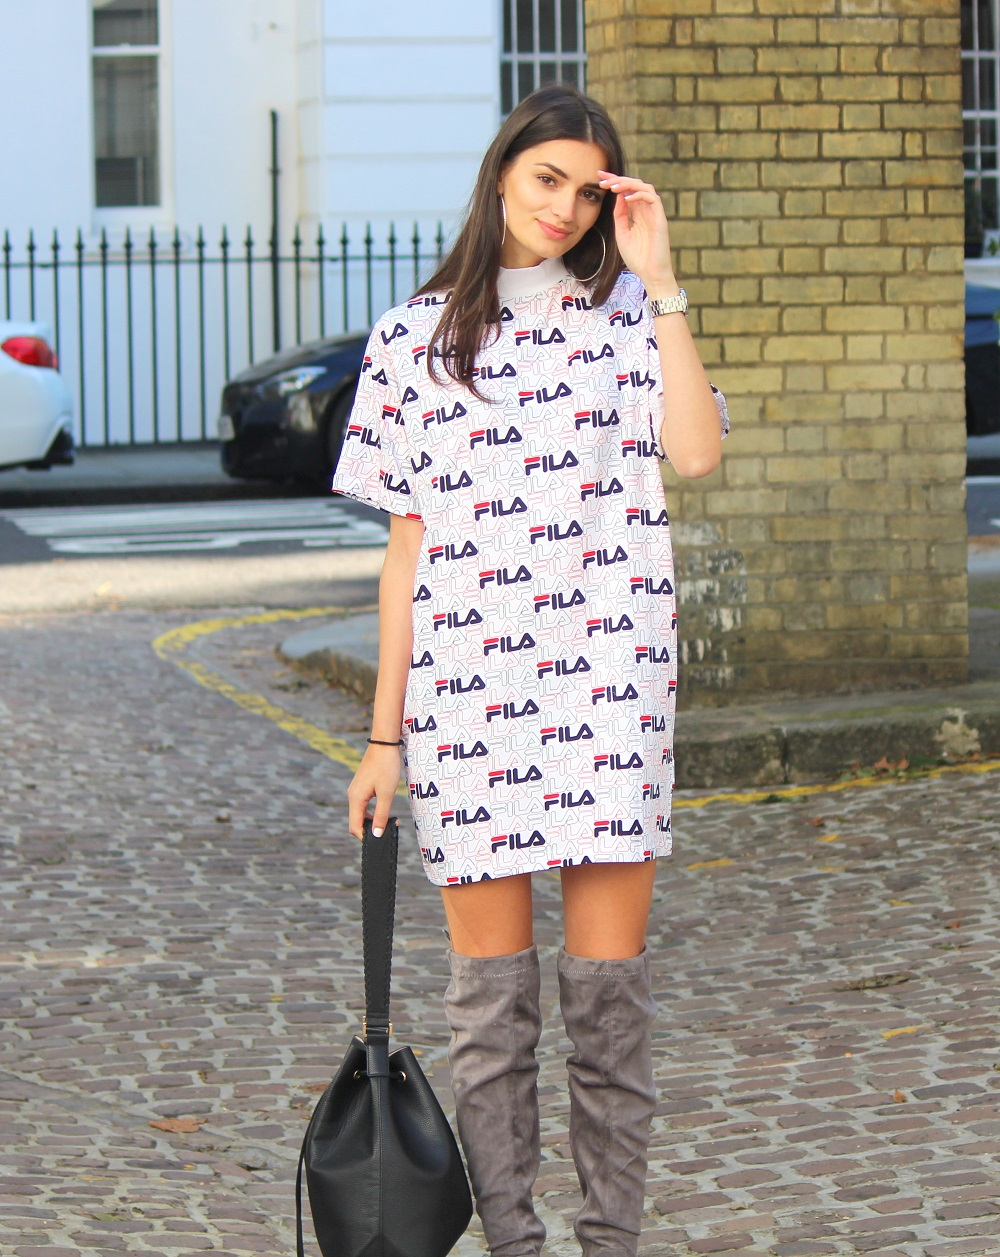 fila outfits. Peexo Fashion Blogger Wearing Fila Asos Exclusive Dress And Knee High Boots Outfits